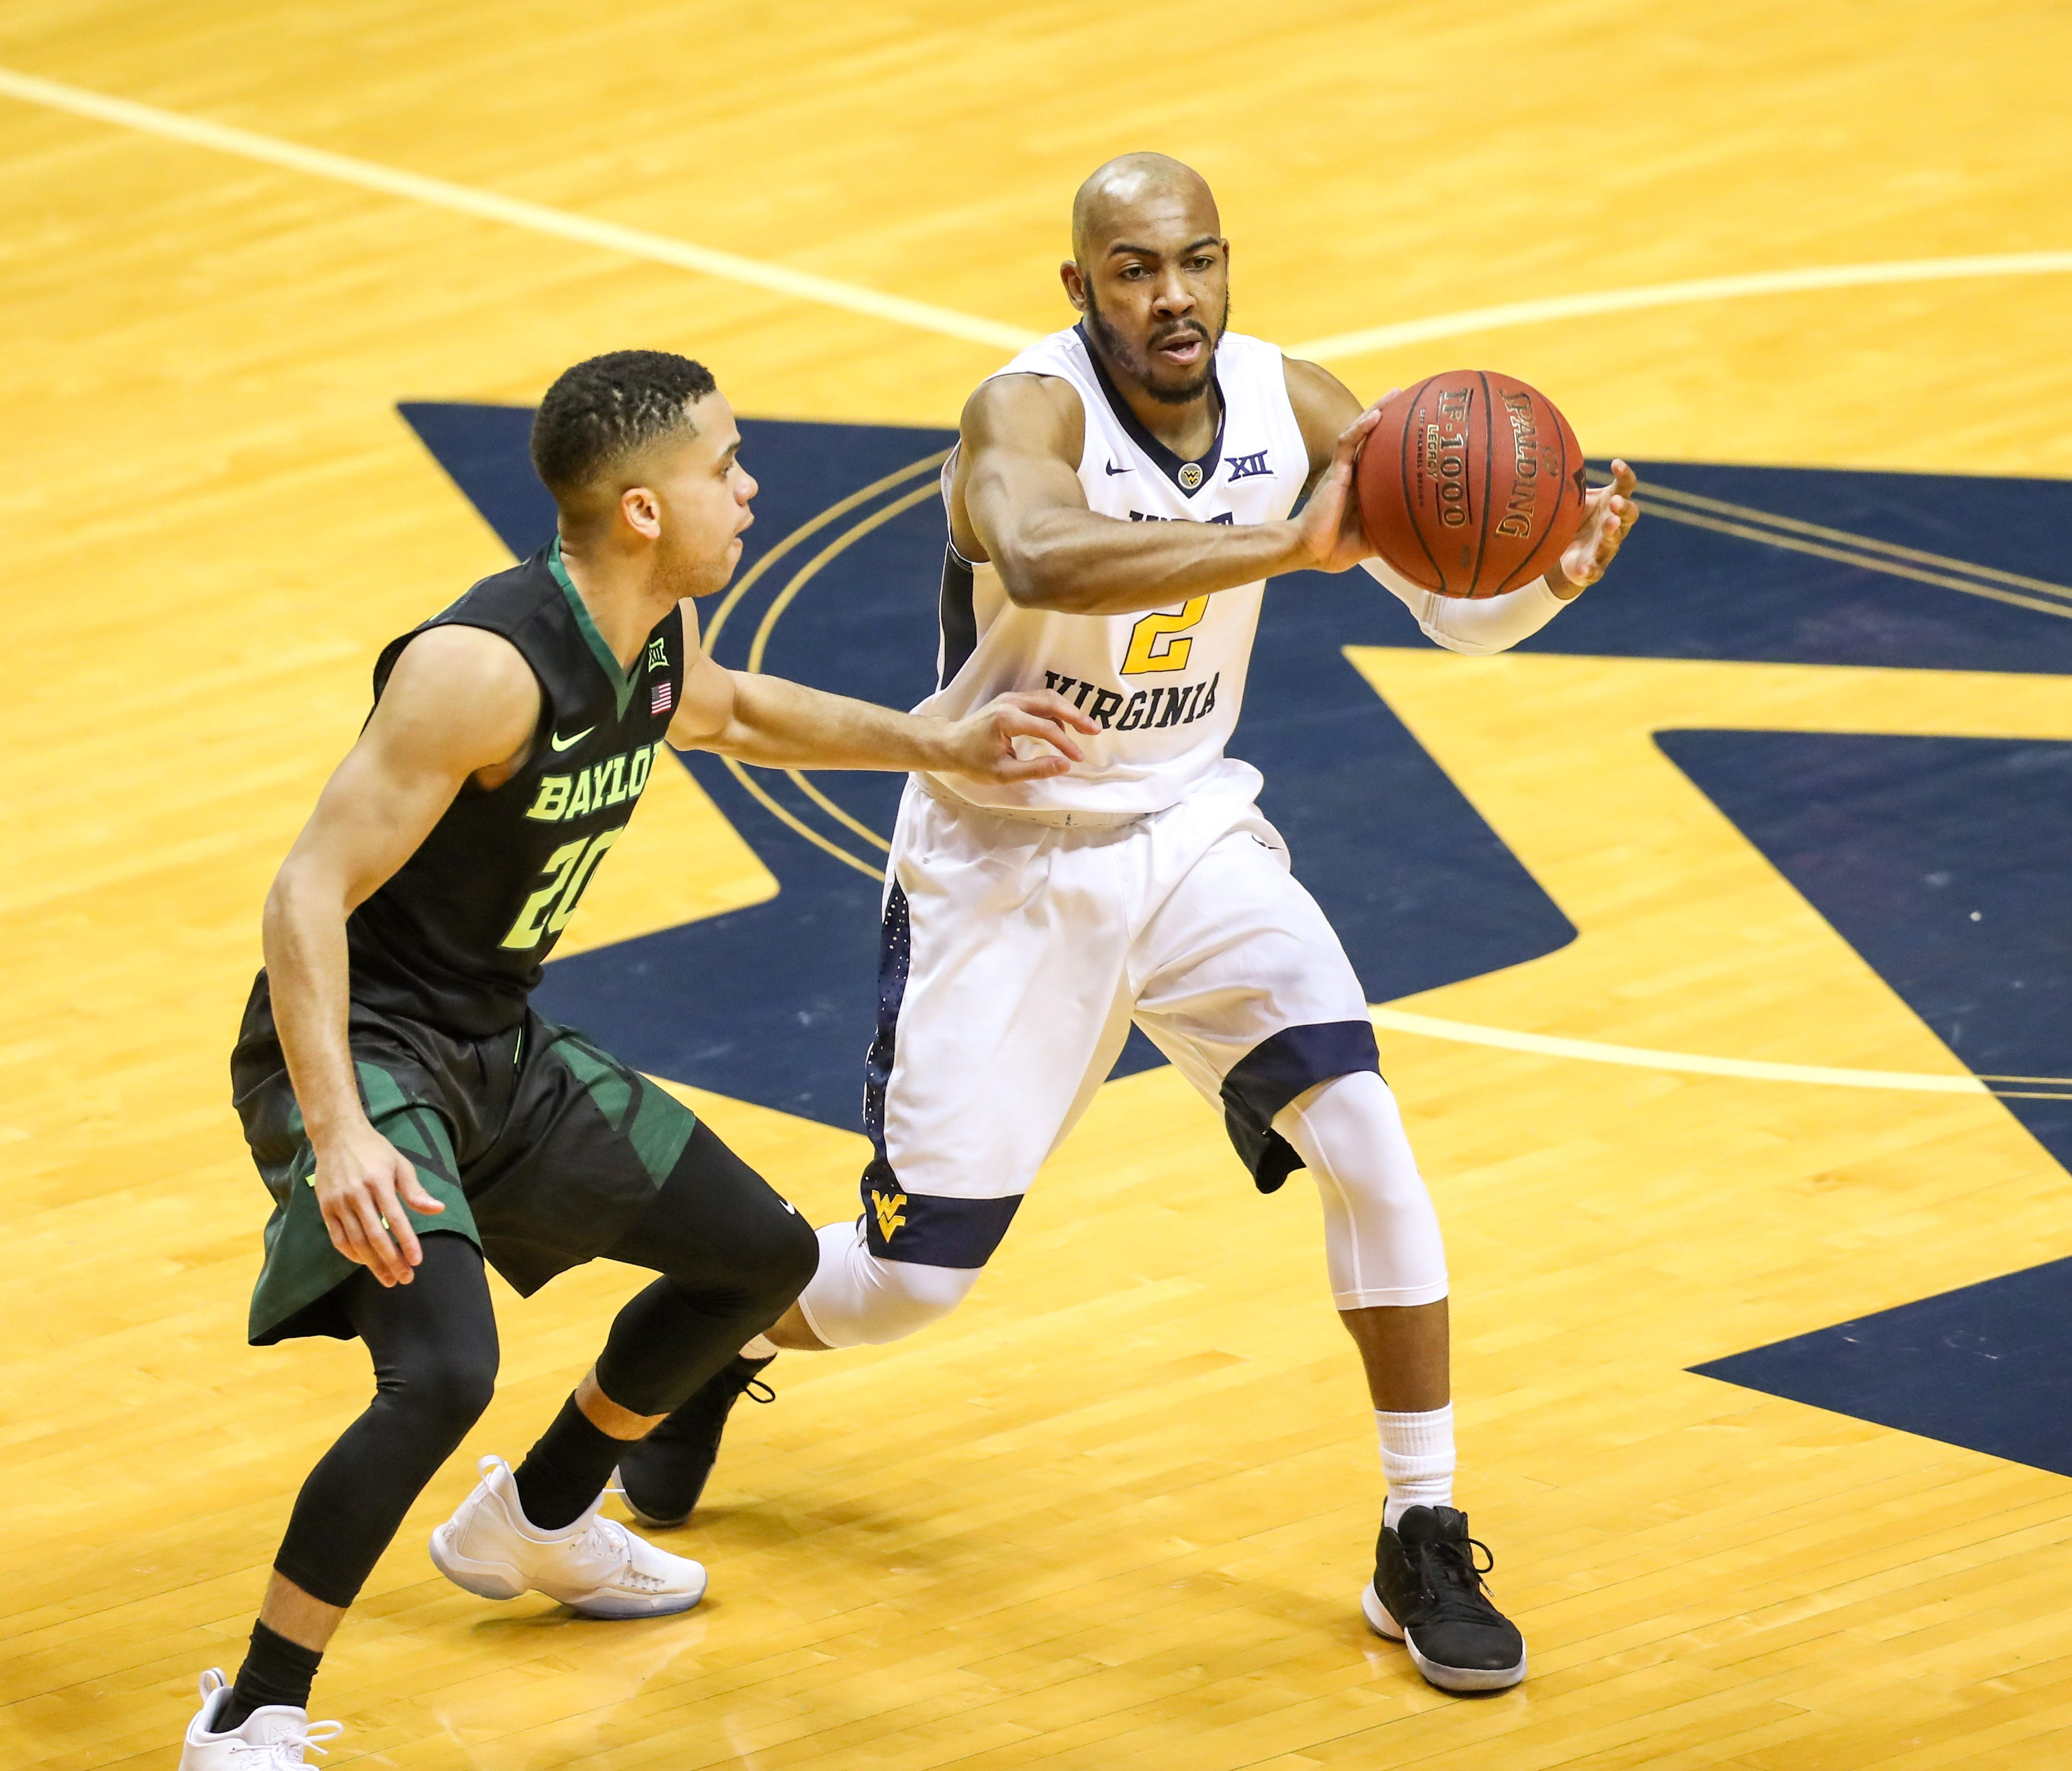 West Virginia guard Jevon Carter passes the ball during the first half against Baylor.